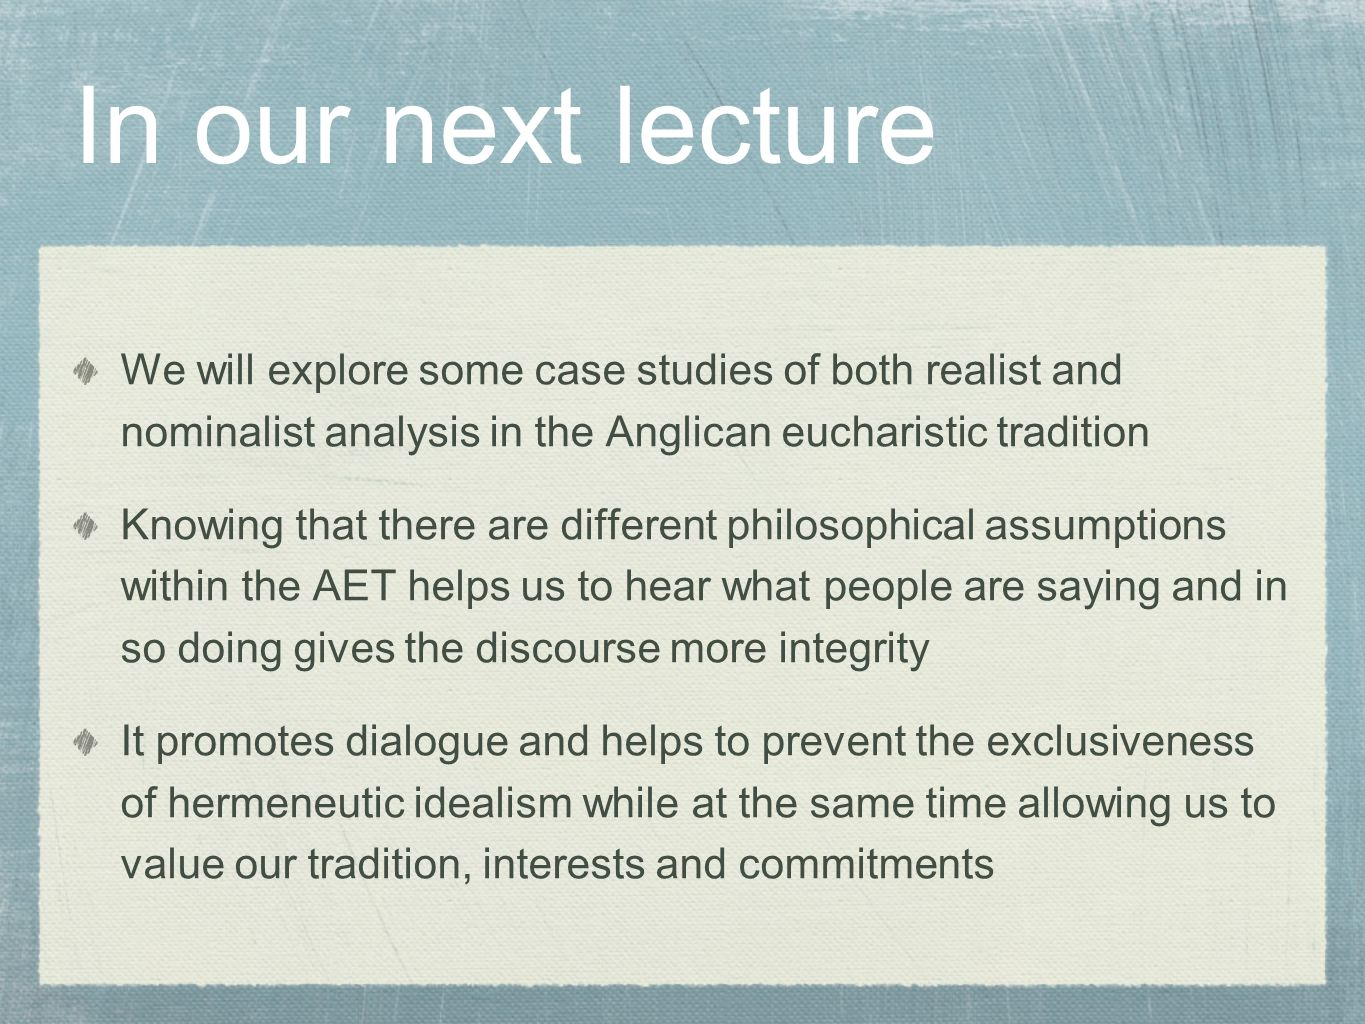 In our next lecture We will explore some case studies of both realist and nominalist analysis in the Anglican eucharistic tradition Knowing that there are different philosophical assumptions within the AET helps us to hear what people are saying and in so doing gives the discourse more integrity It promotes dialogue and helps to prevent the exclusiveness of hermeneutic idealism while at the same time allowing us to value our tradition, interests and commitments